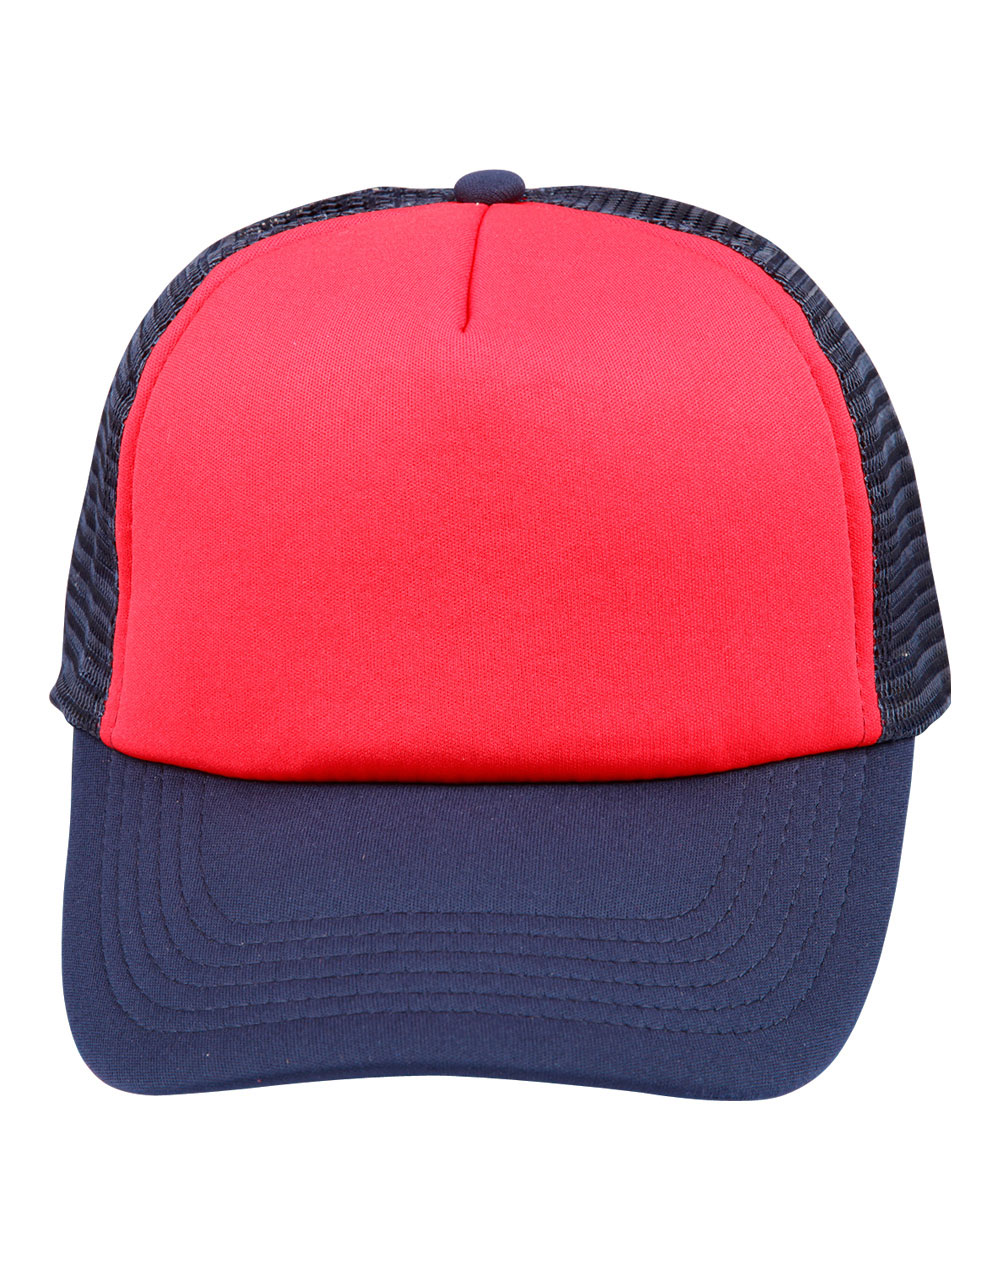 trucker red and navy think.jpg